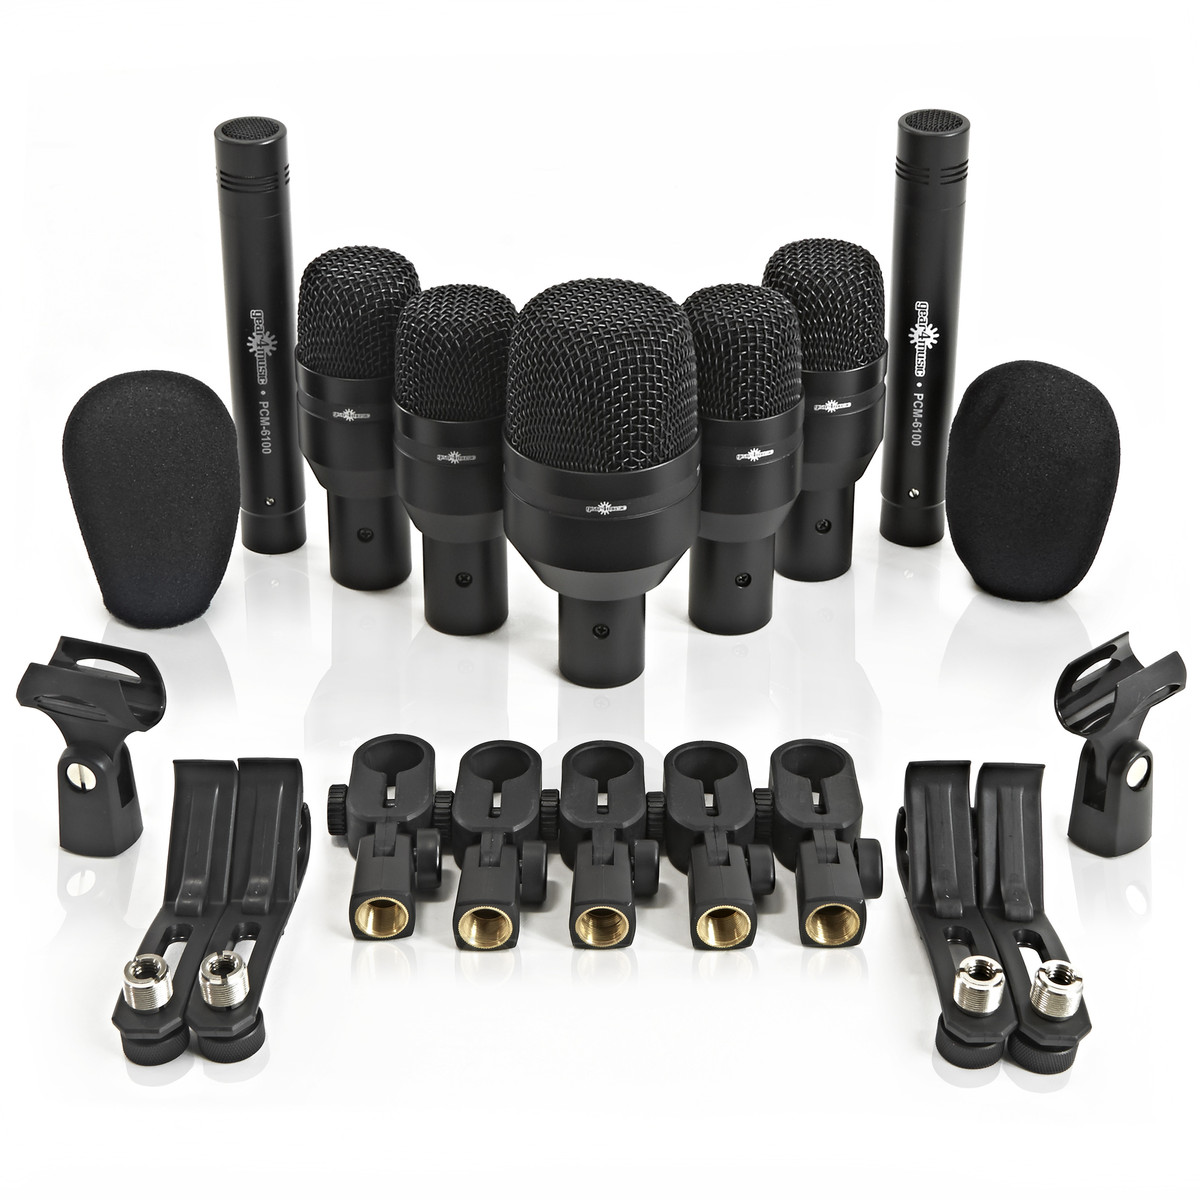 7 piece drum mic set with carry case by gear4music box opened at gear4music. Black Bedroom Furniture Sets. Home Design Ideas